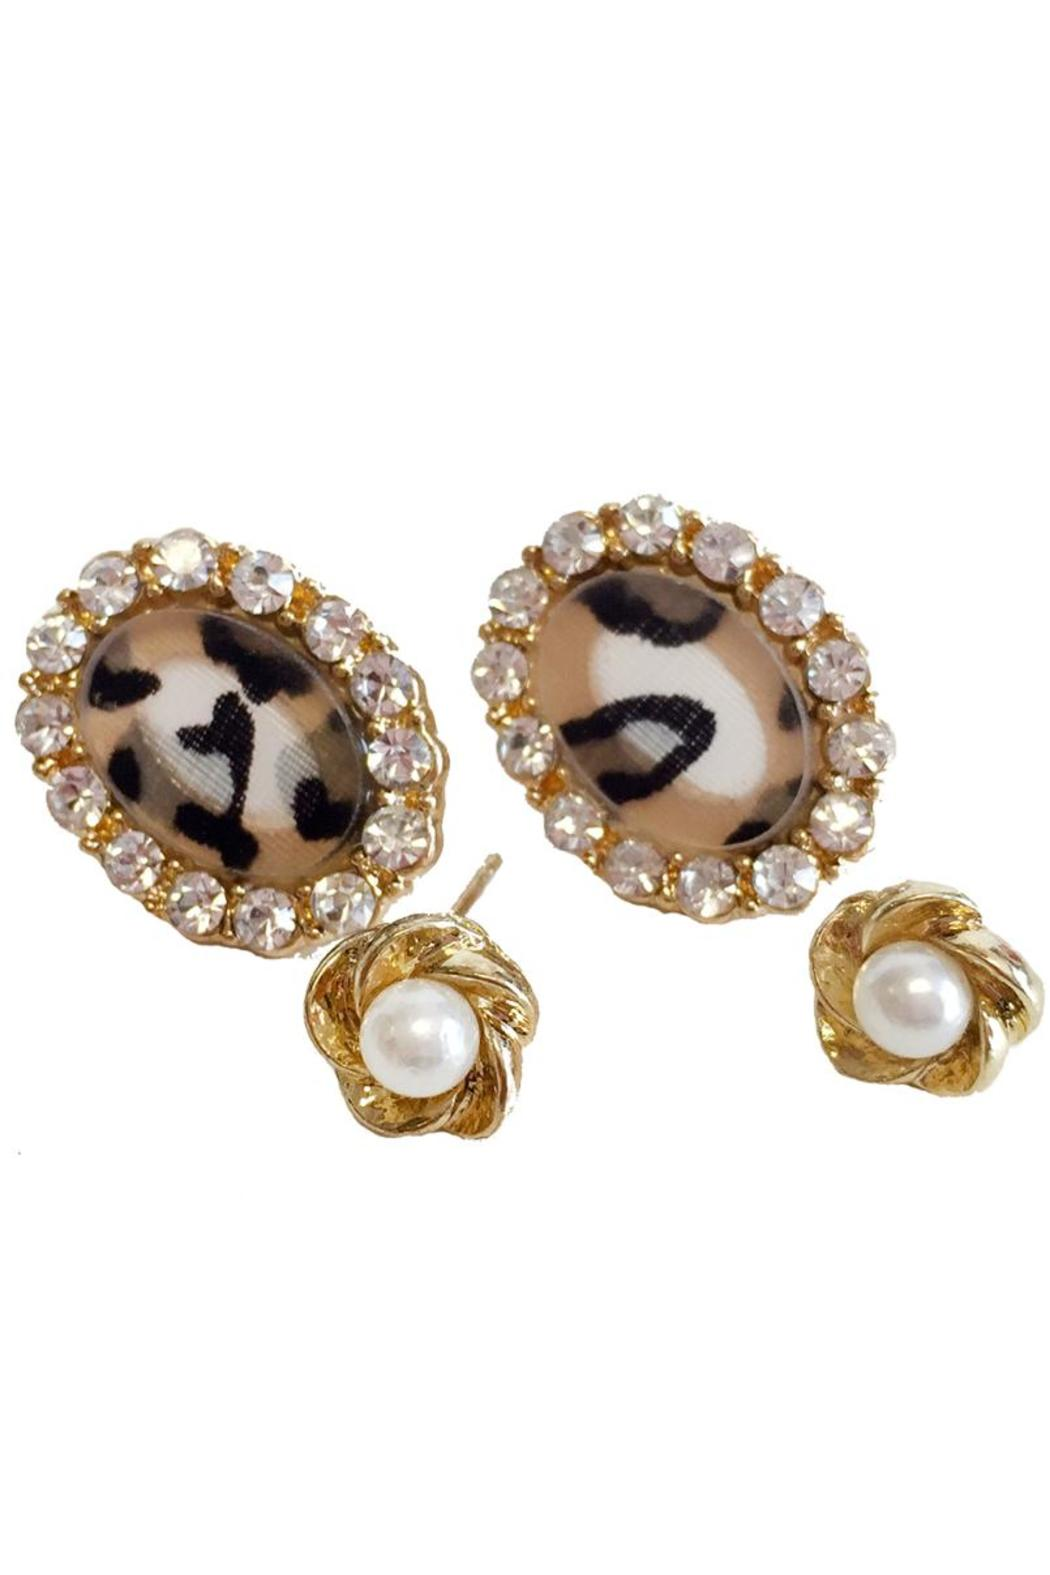 Leopard Earring Set from Las Vegas by Glam Squad Shop